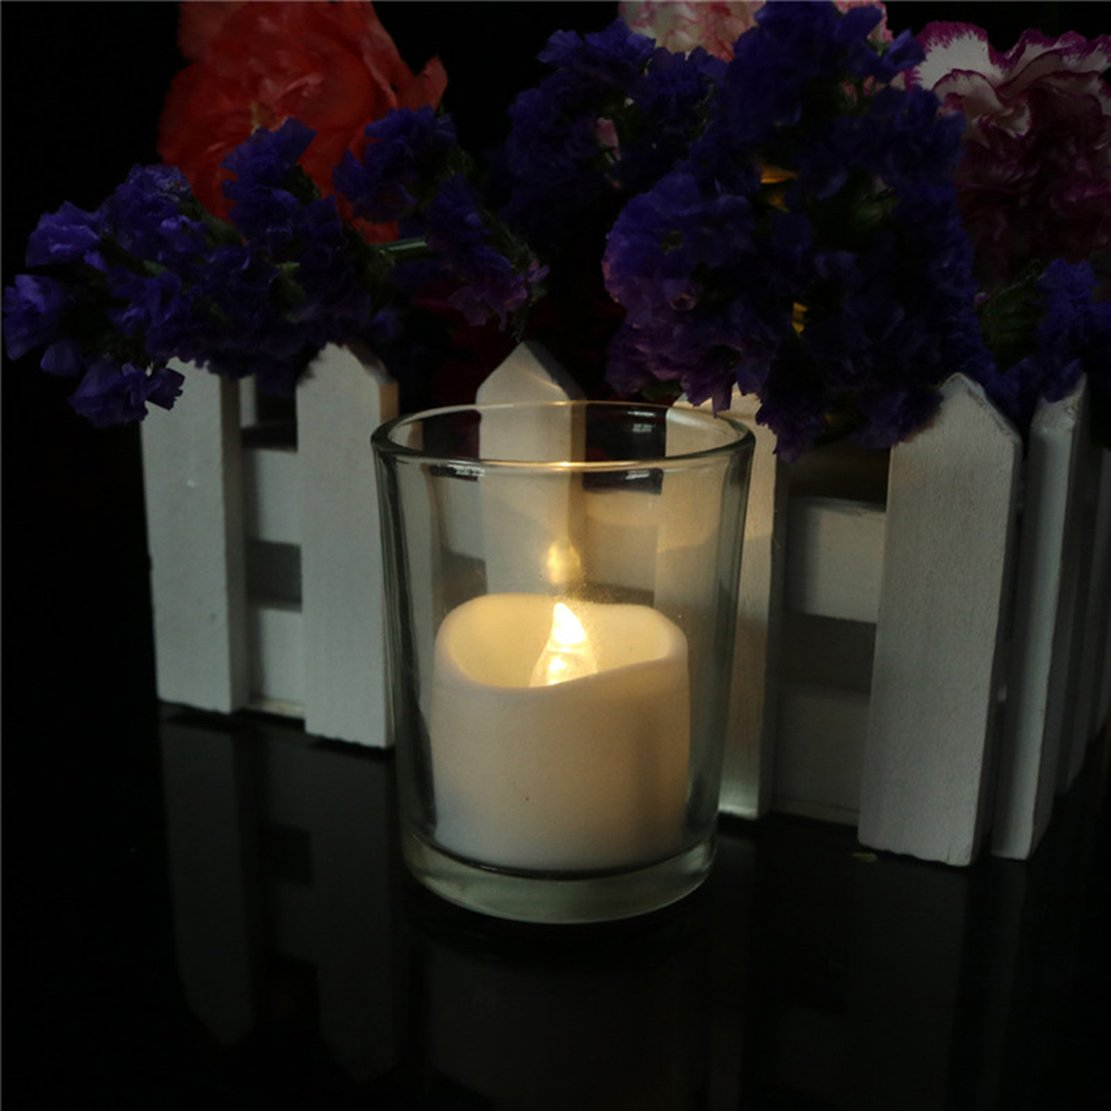 200 Hours Led Mini Tea Light with Timer (6 Hrs On 18 Hrs Off) Flameless Warm White Flickering Fake Votive Candle Wavy Open Rustic Long Lasting Electric Timed Tealights Party Home Wedding Decor 96 PCS by Beauty Collector (Image #3)